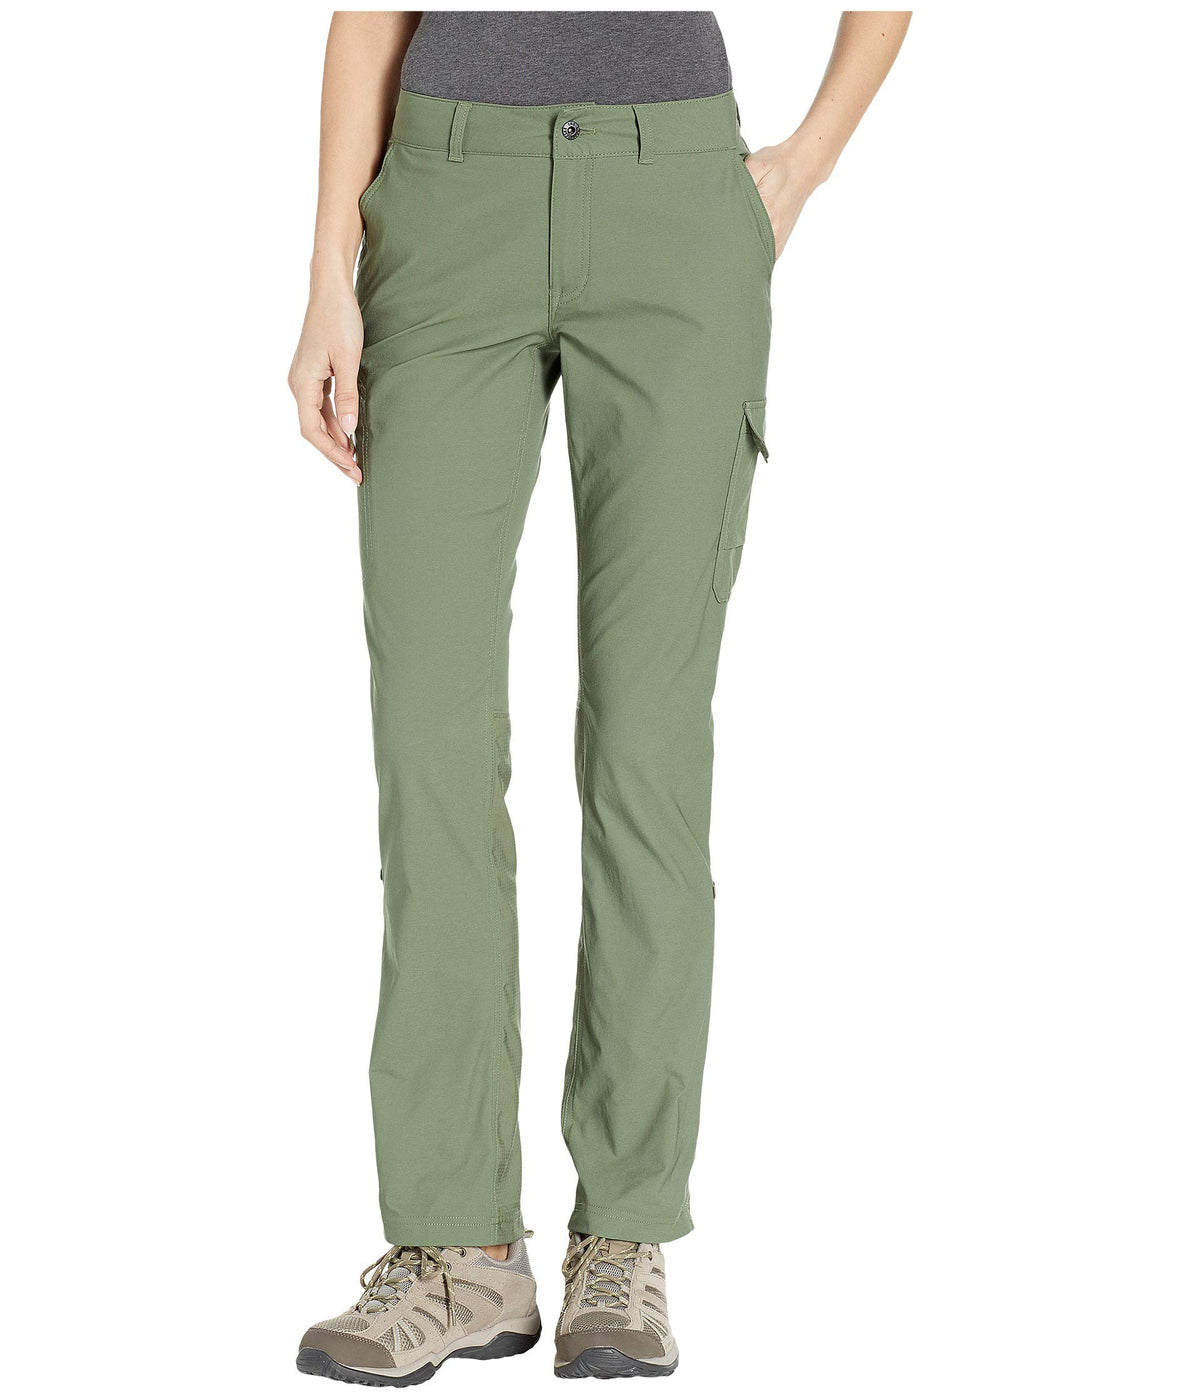 Wandur Hike Pants